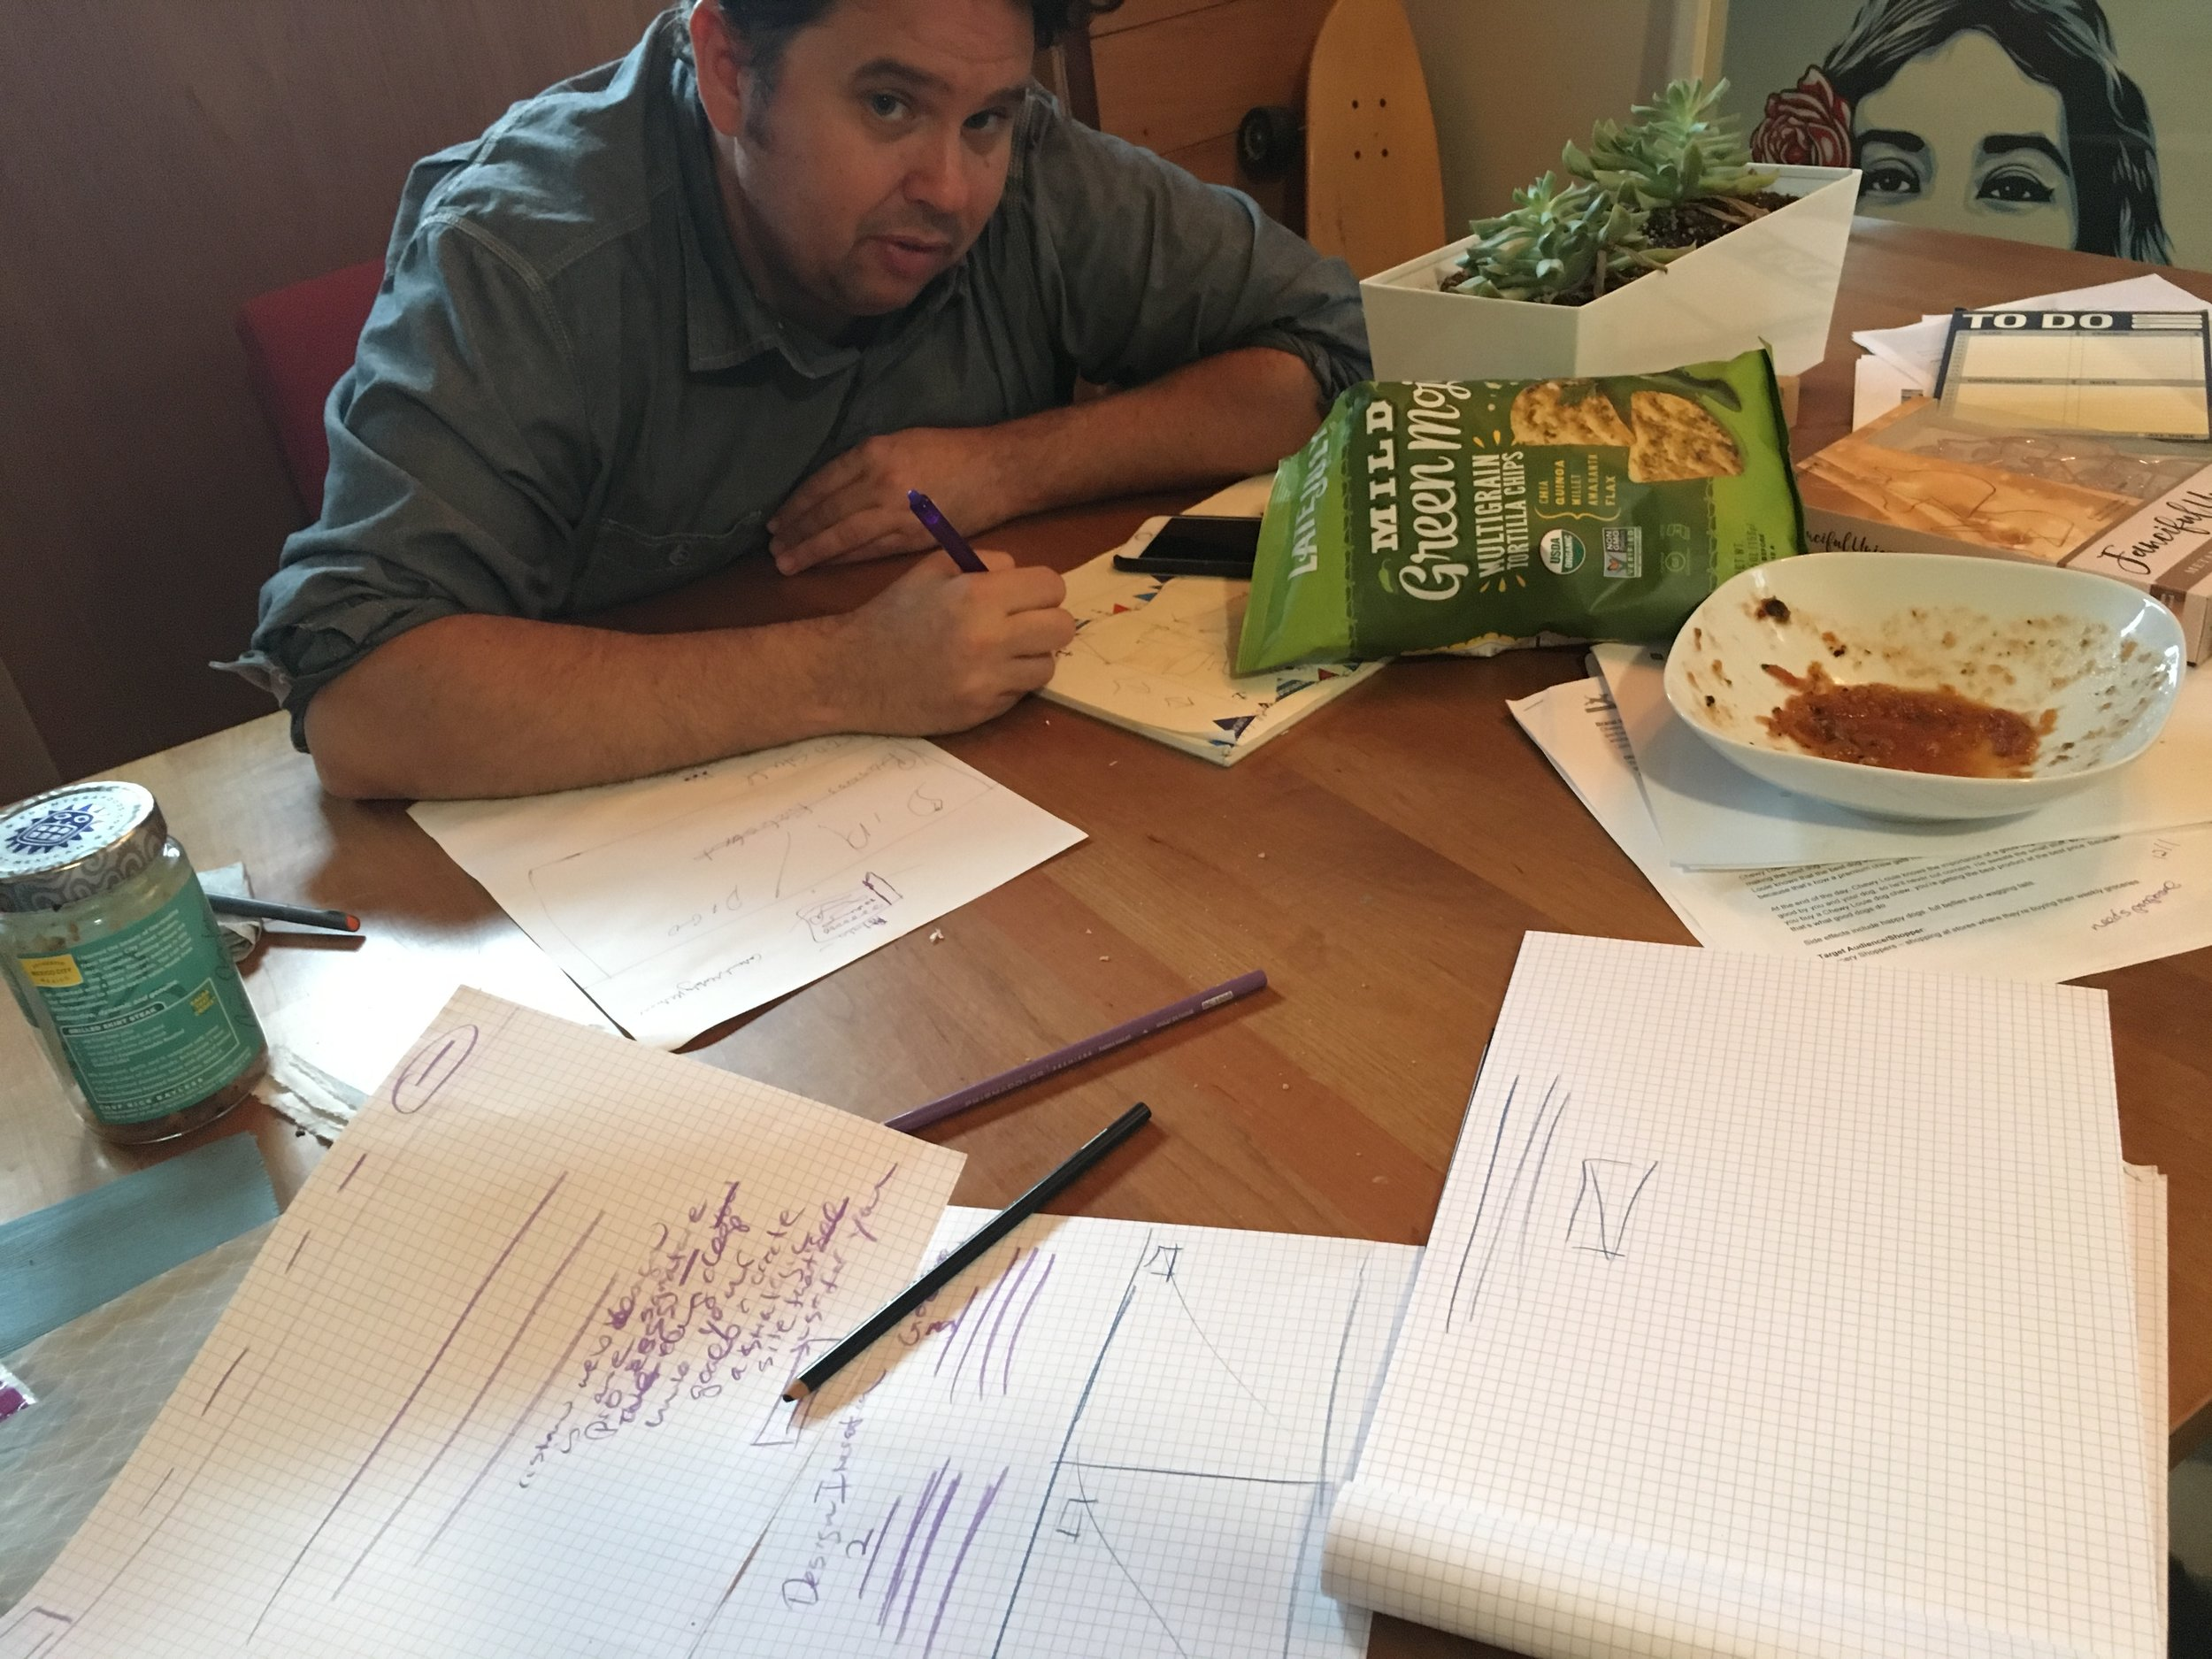 We start the planning for every custom website with pencil & paper—but had never done this for the SMCO website. Josh and I spent a lot of evenings literally sketching our the journey map for the site restructure. Shout out to 4th of July chips and Frontera salsa for fueling us!